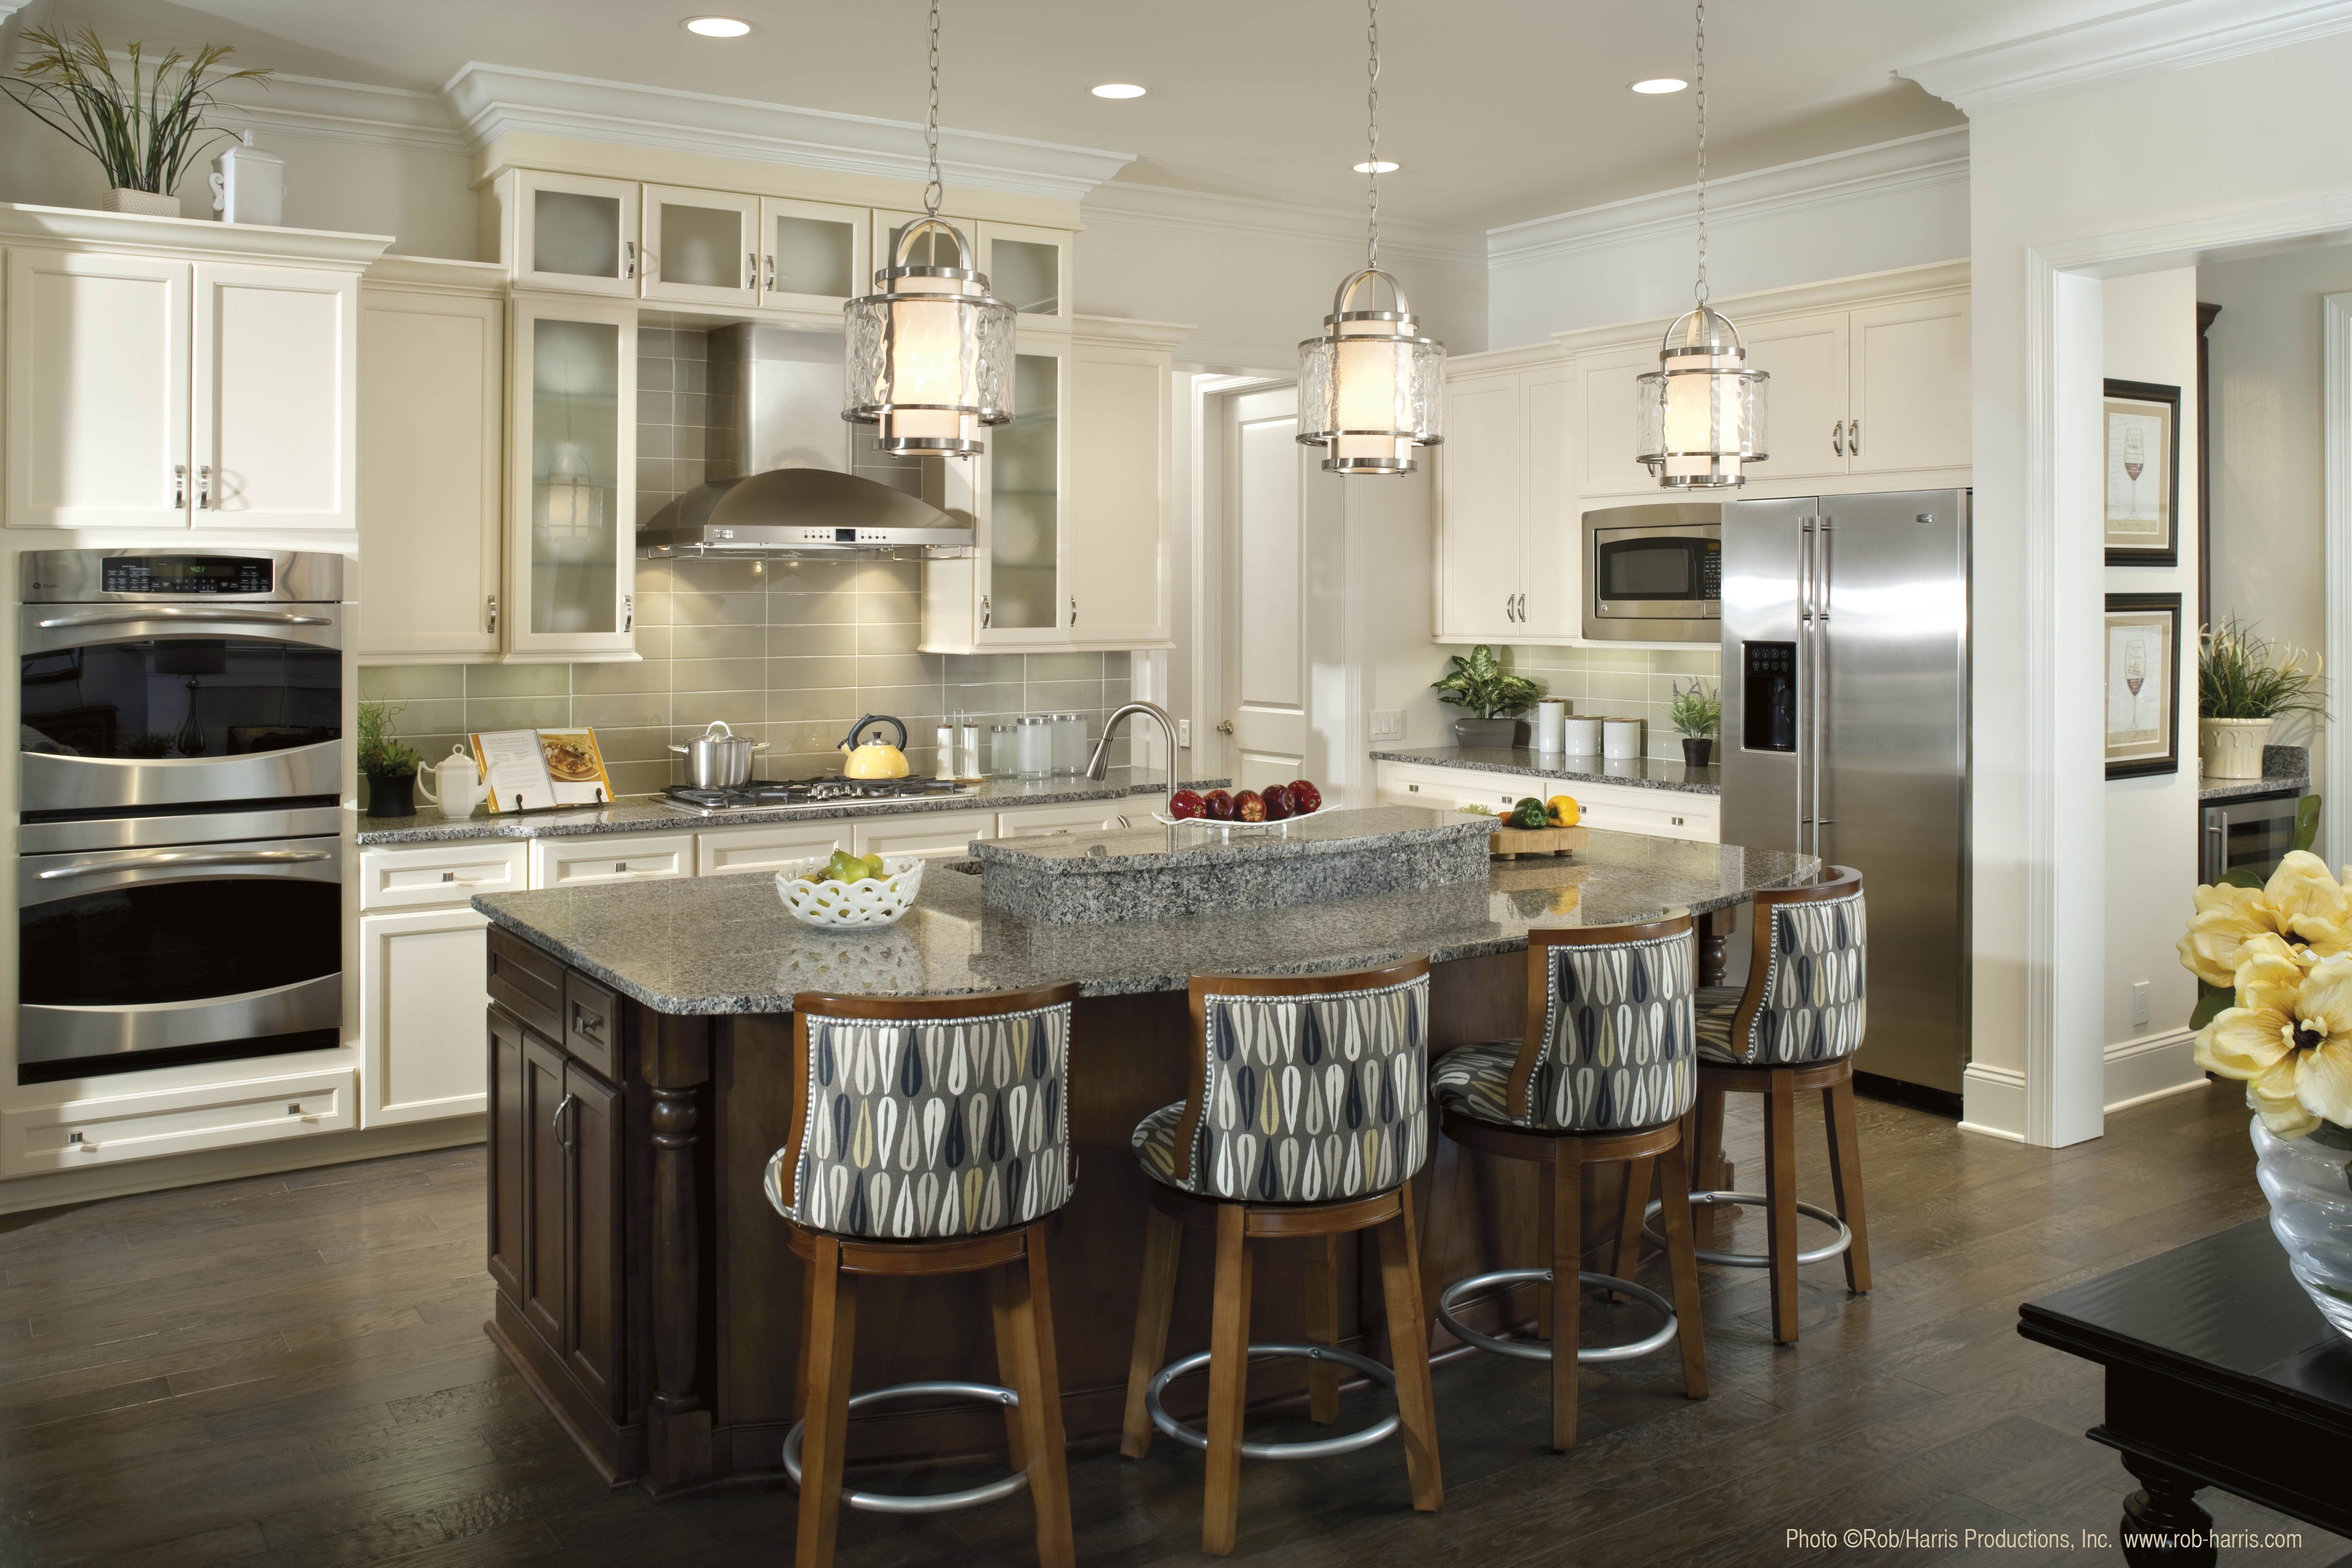 Permalink to Lovely Pendant Lighting Kitchen island Ideas